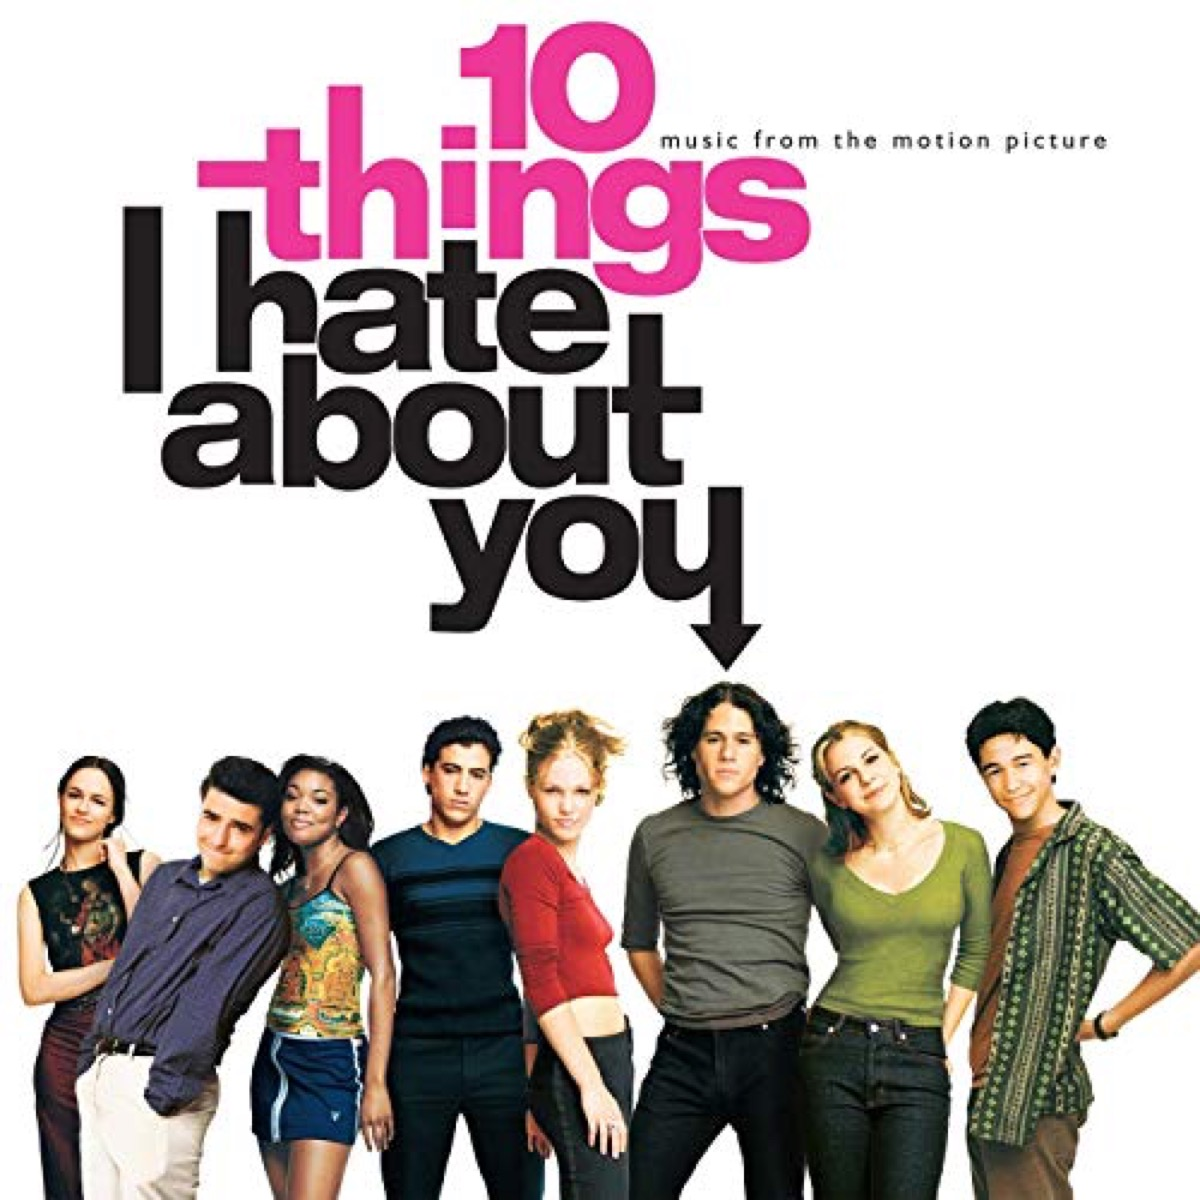 10 things I hate about you movie soundtrack